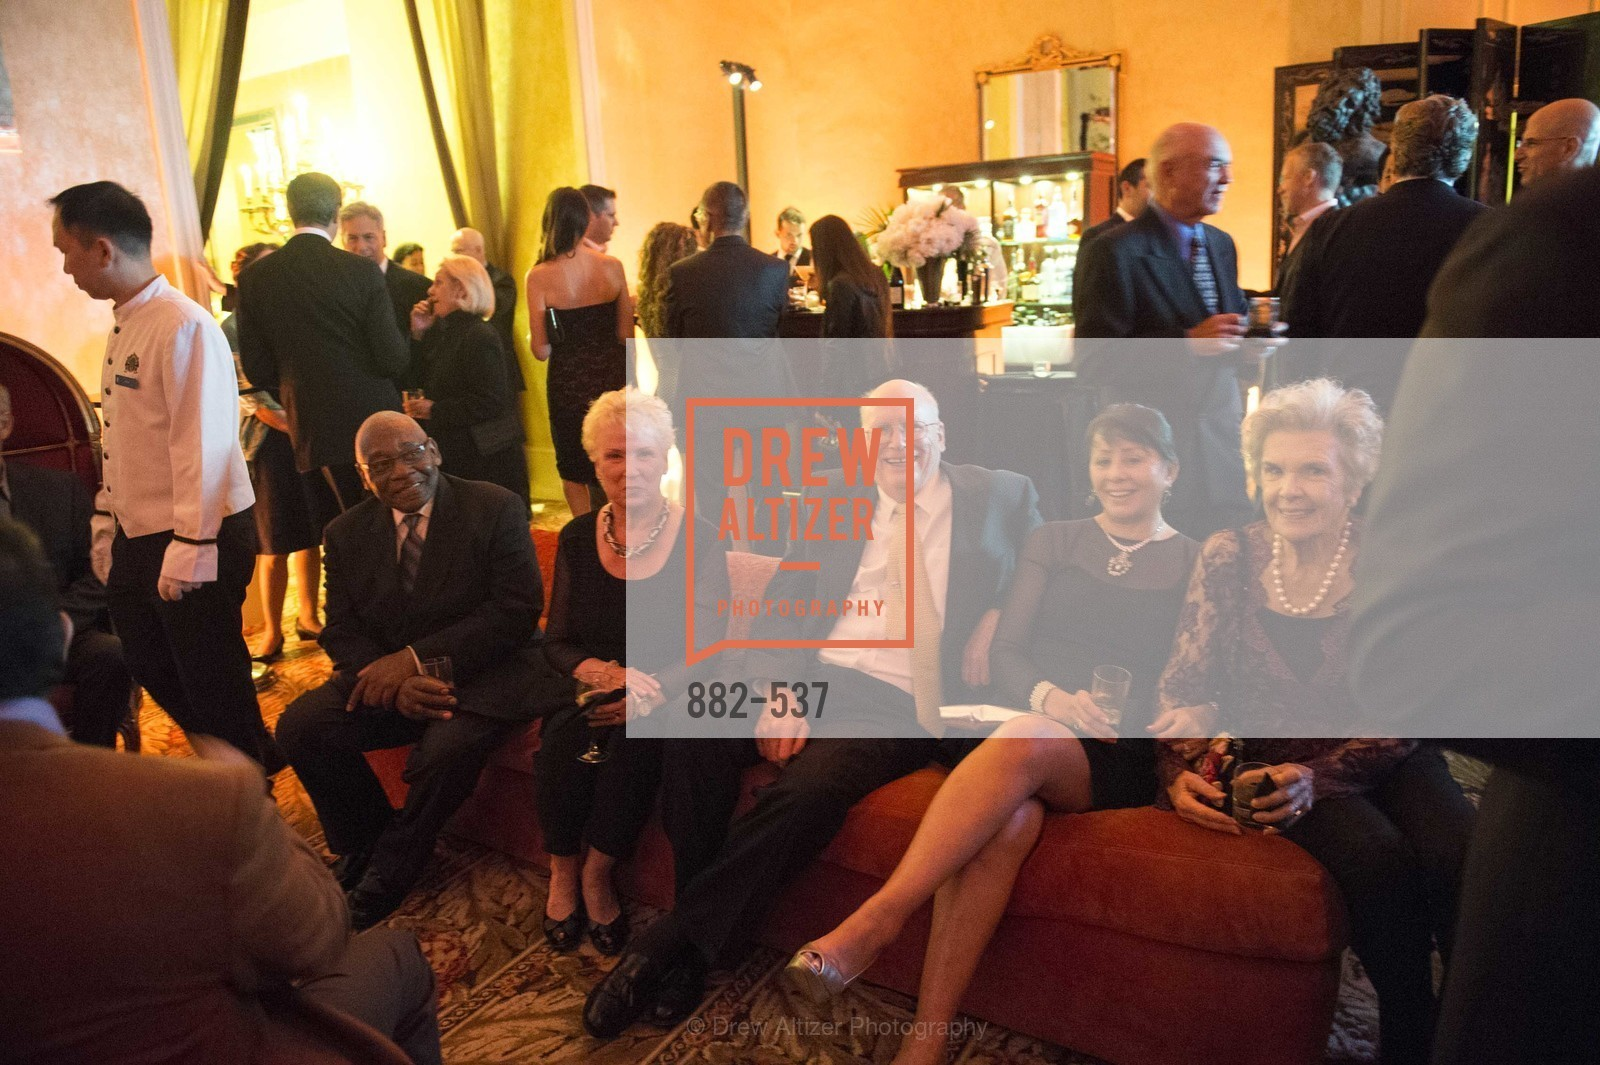 Pat Gonsalves, Tom Brady, Maria Miguels, Cathy Brady, TOP OF THE MARK'S 75TH Anniversary Party, US, November 6th, 2014,Drew Altizer, Drew Altizer Photography, full-service agency, private events, San Francisco photographer, photographer california